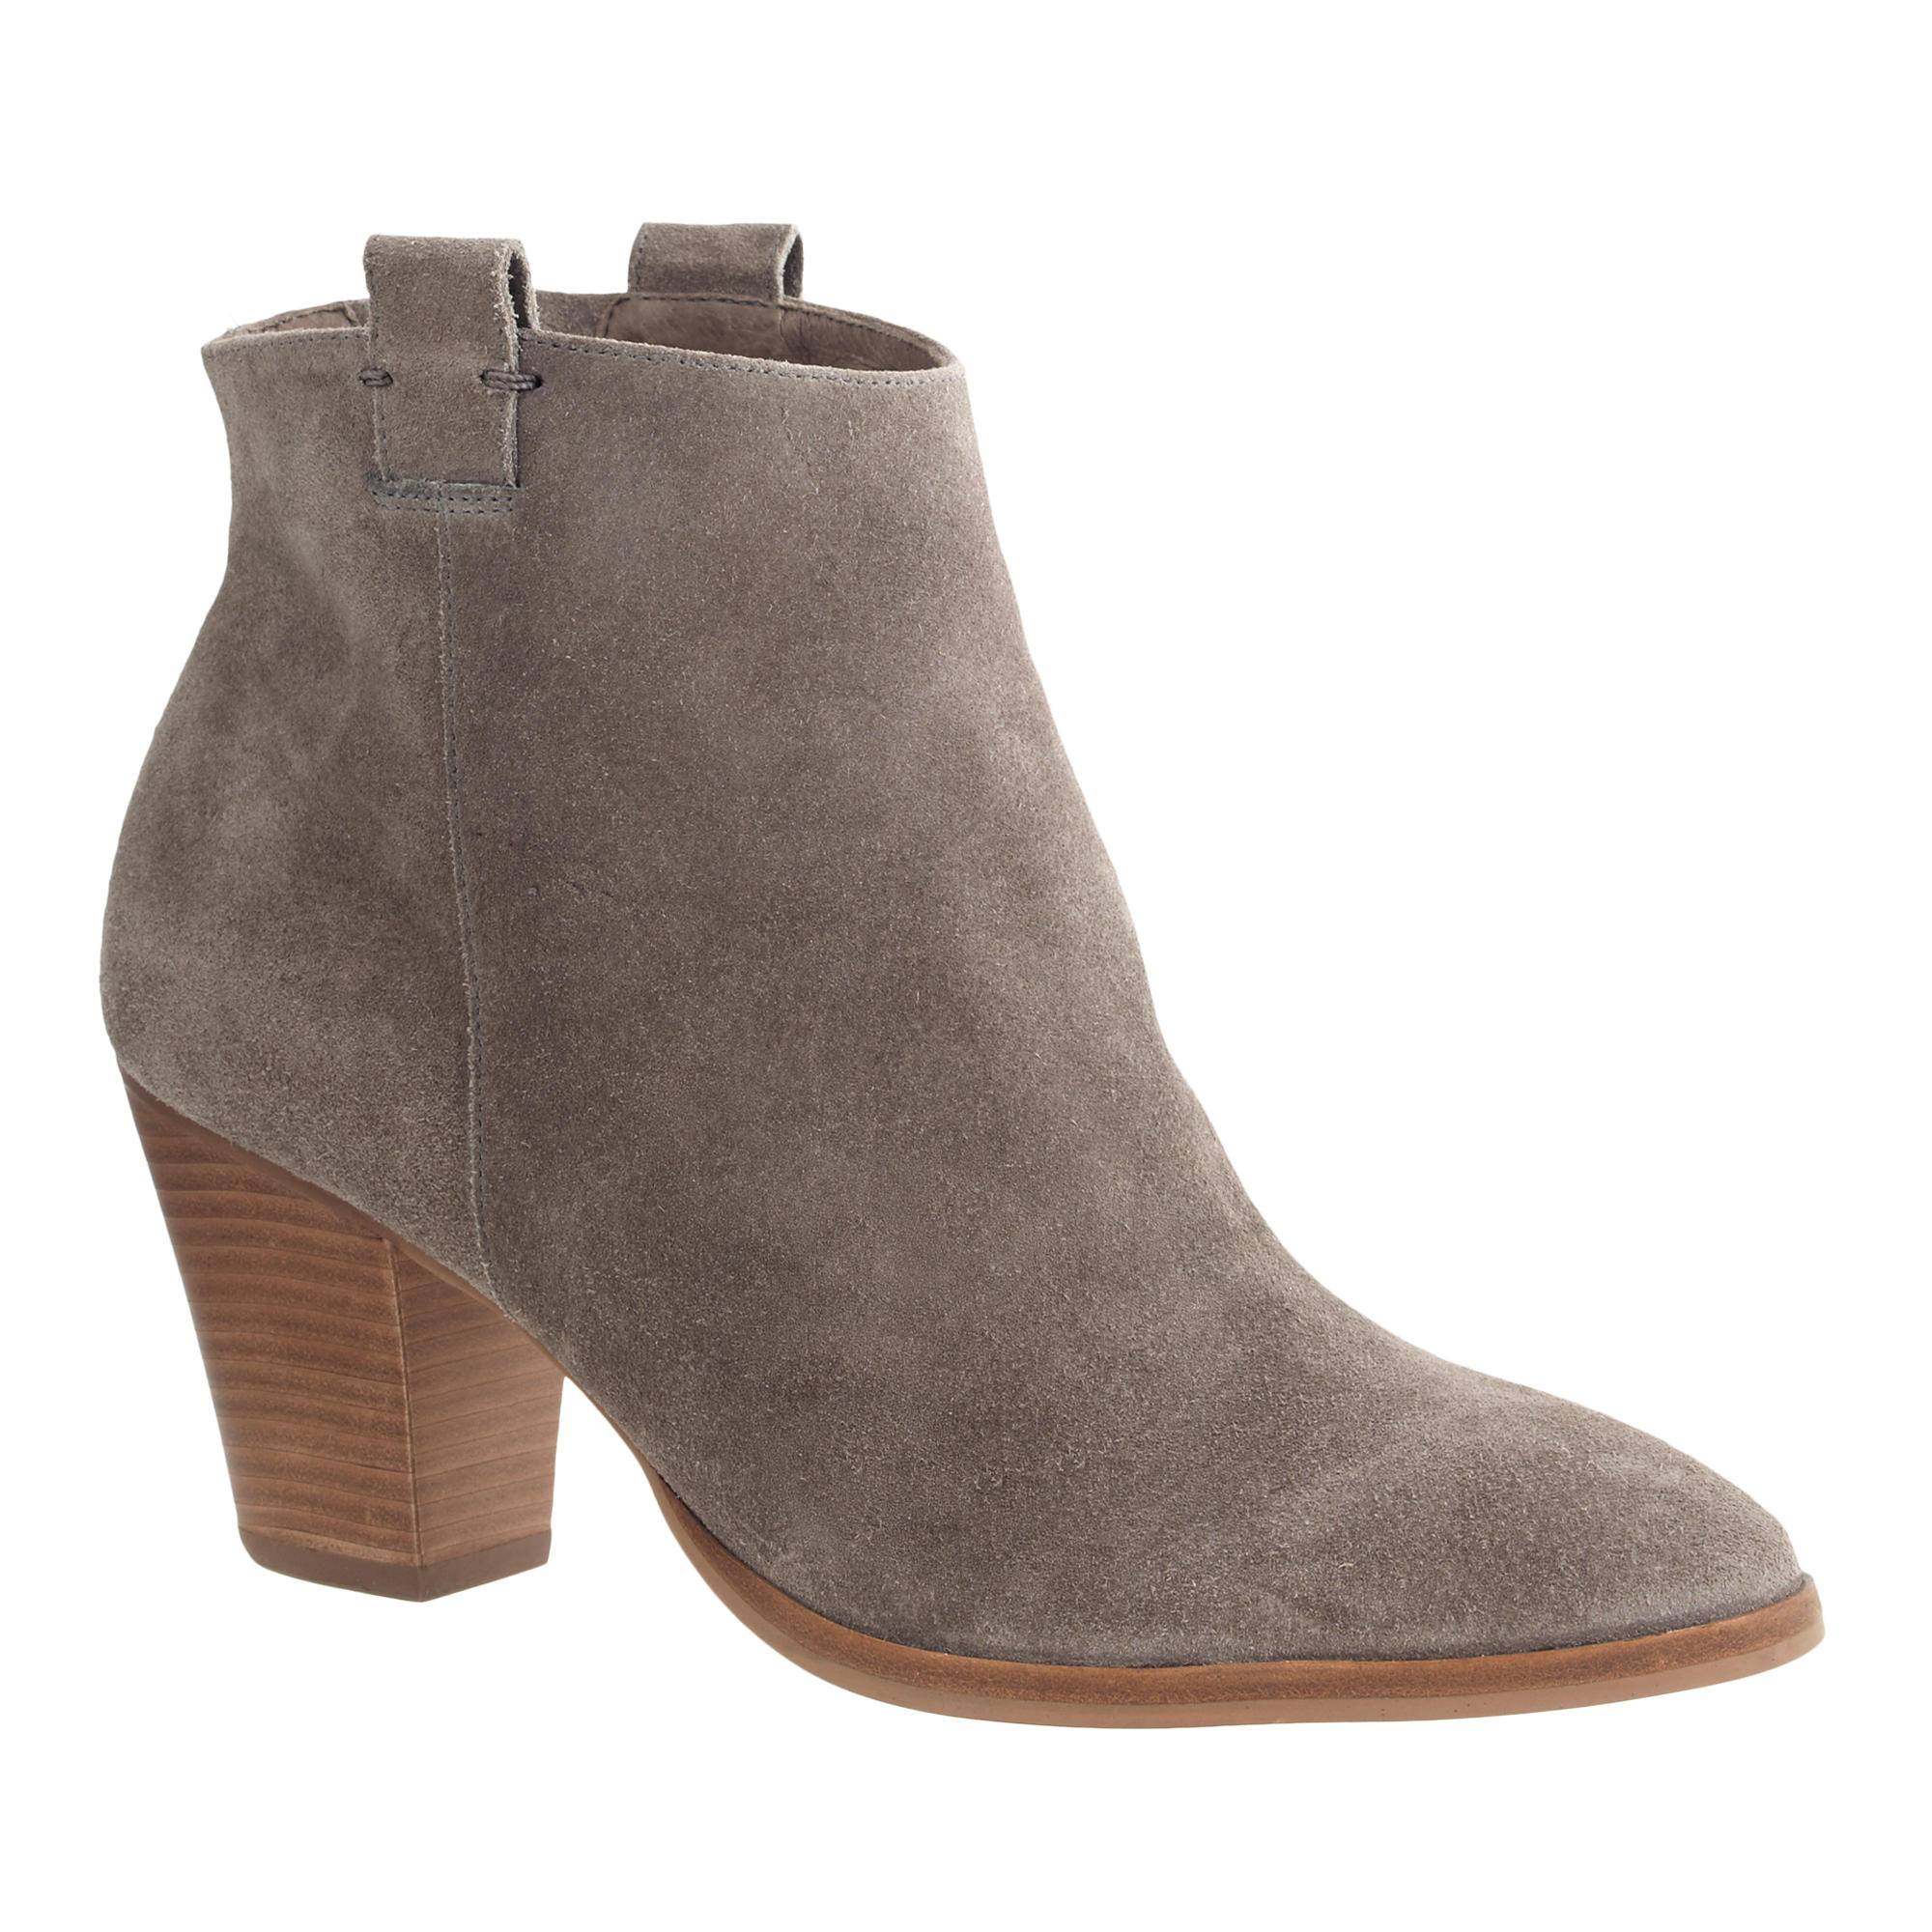 Jcrew Eaton Suede Ankle Boots In Gray - Lyst-2337